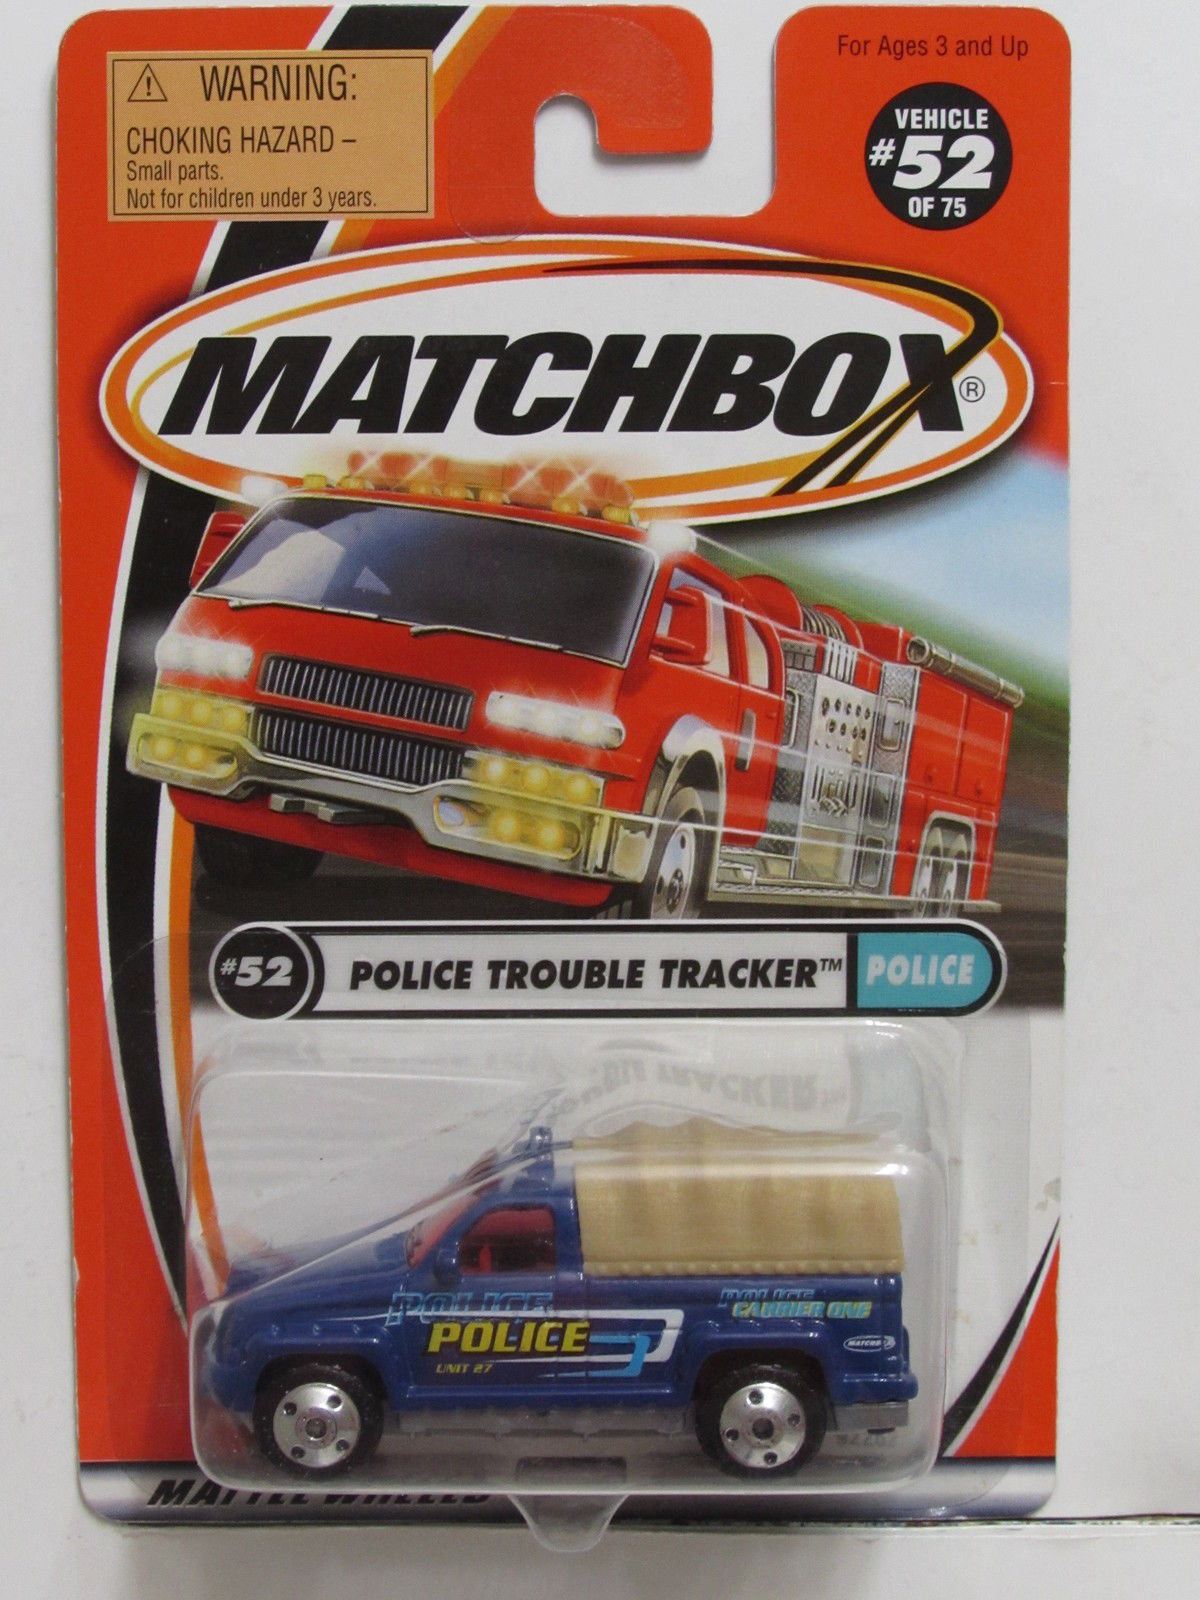 MATCHBOX 2000 POLICE TROUBLE TRACKER #52 POLICE